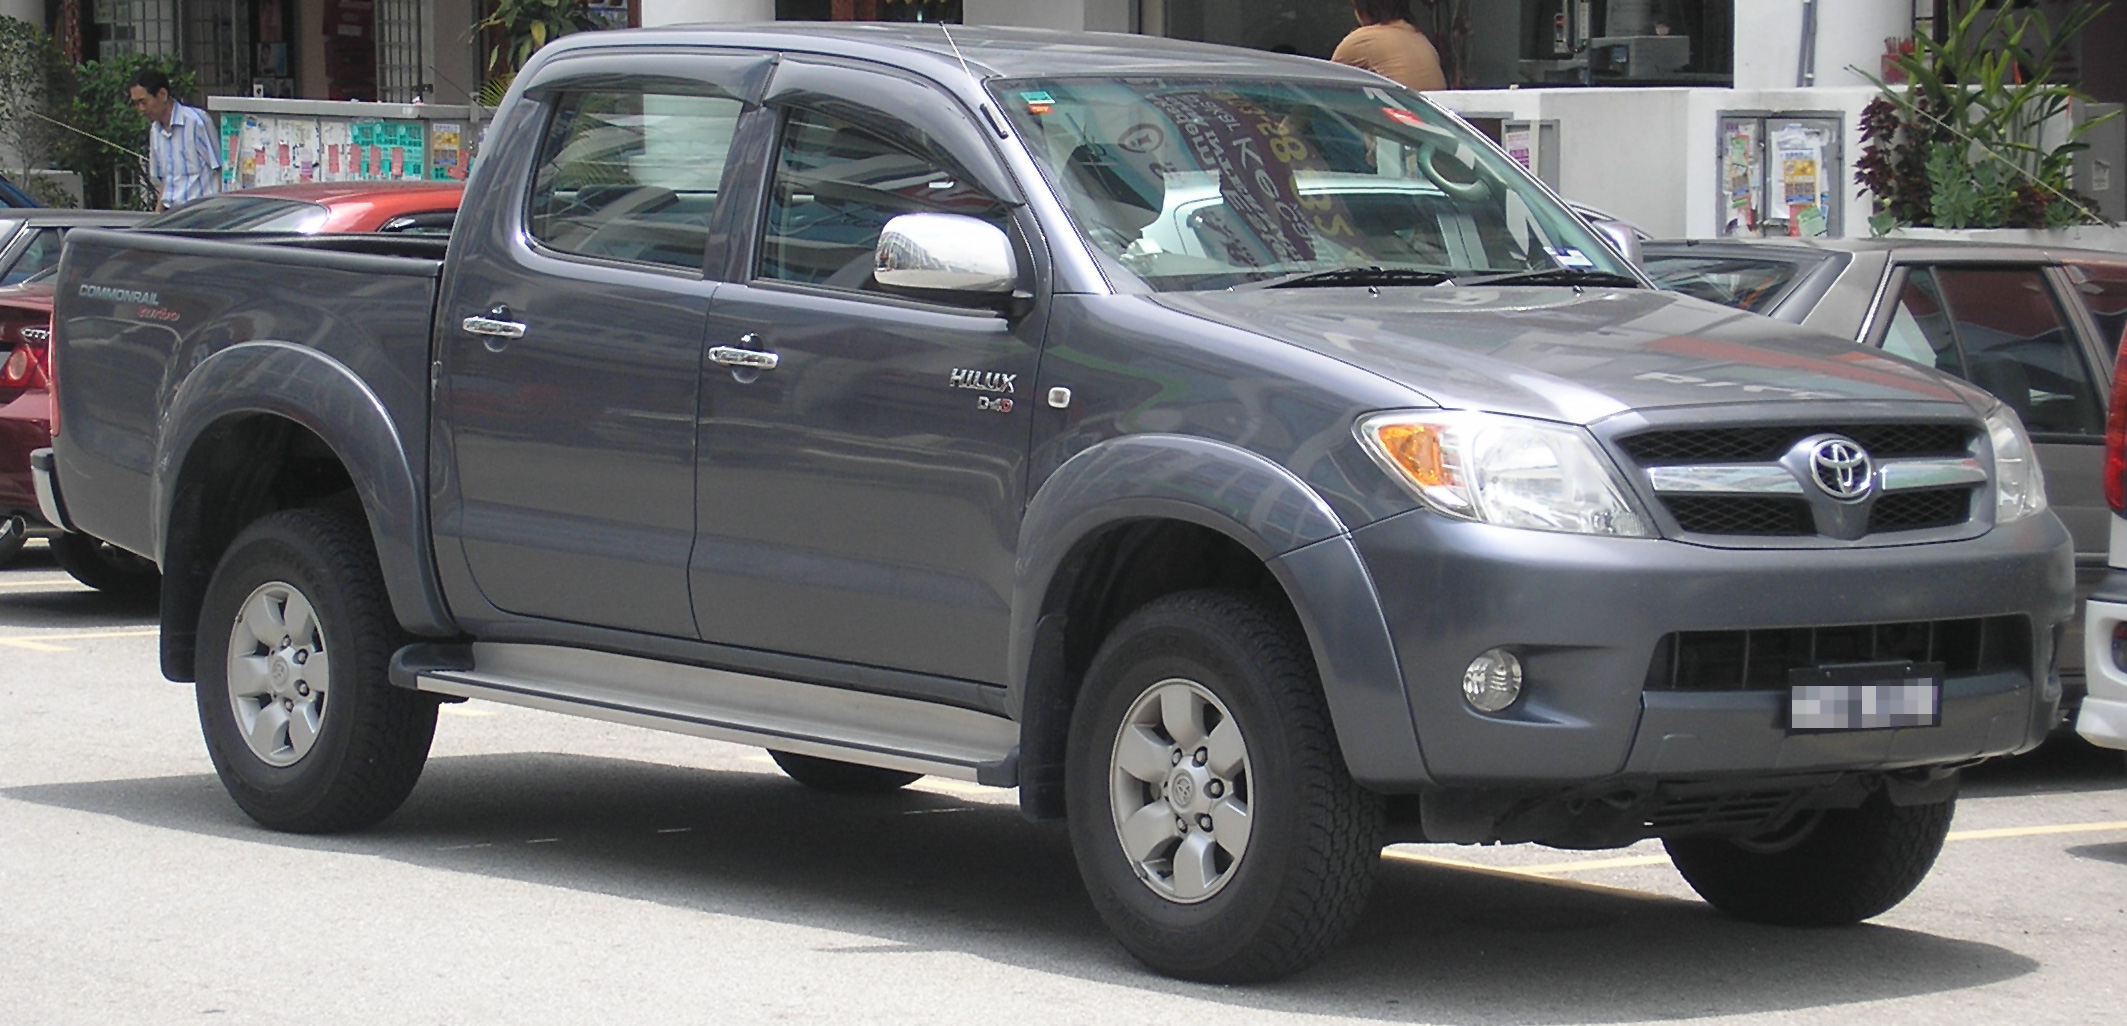 Toyota Hilux 2000 photo - 4